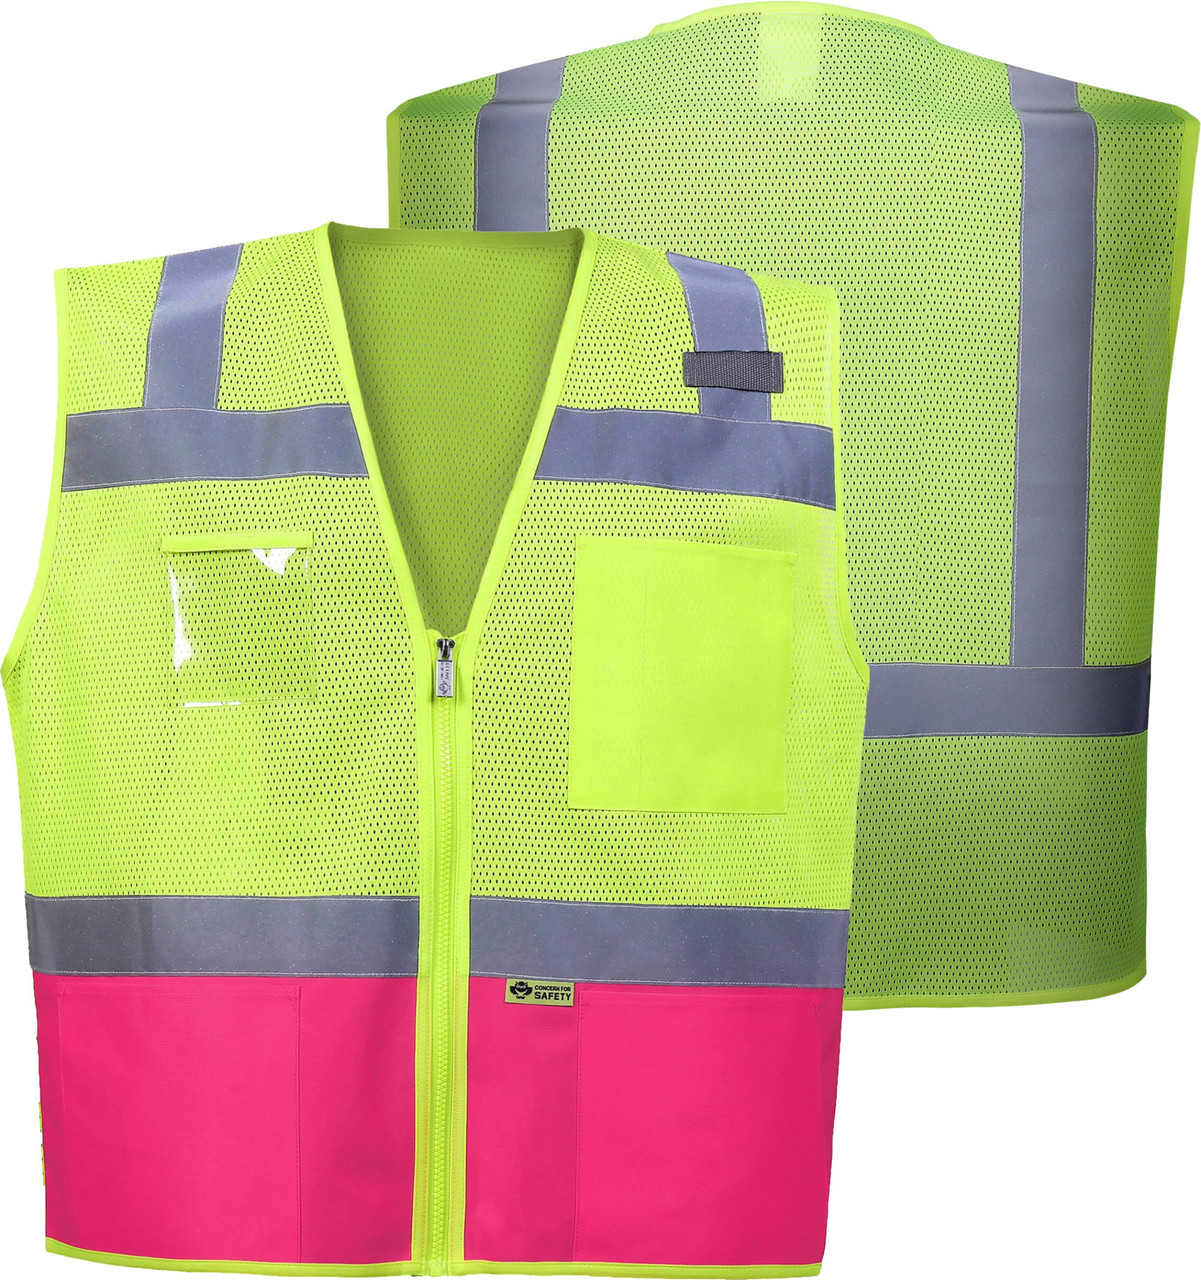 Pink Safety Vest Class 2 | ANSI Class 2 Pink Bottom 2 Tone Contrast Safety Vest | Women's Safety Vest